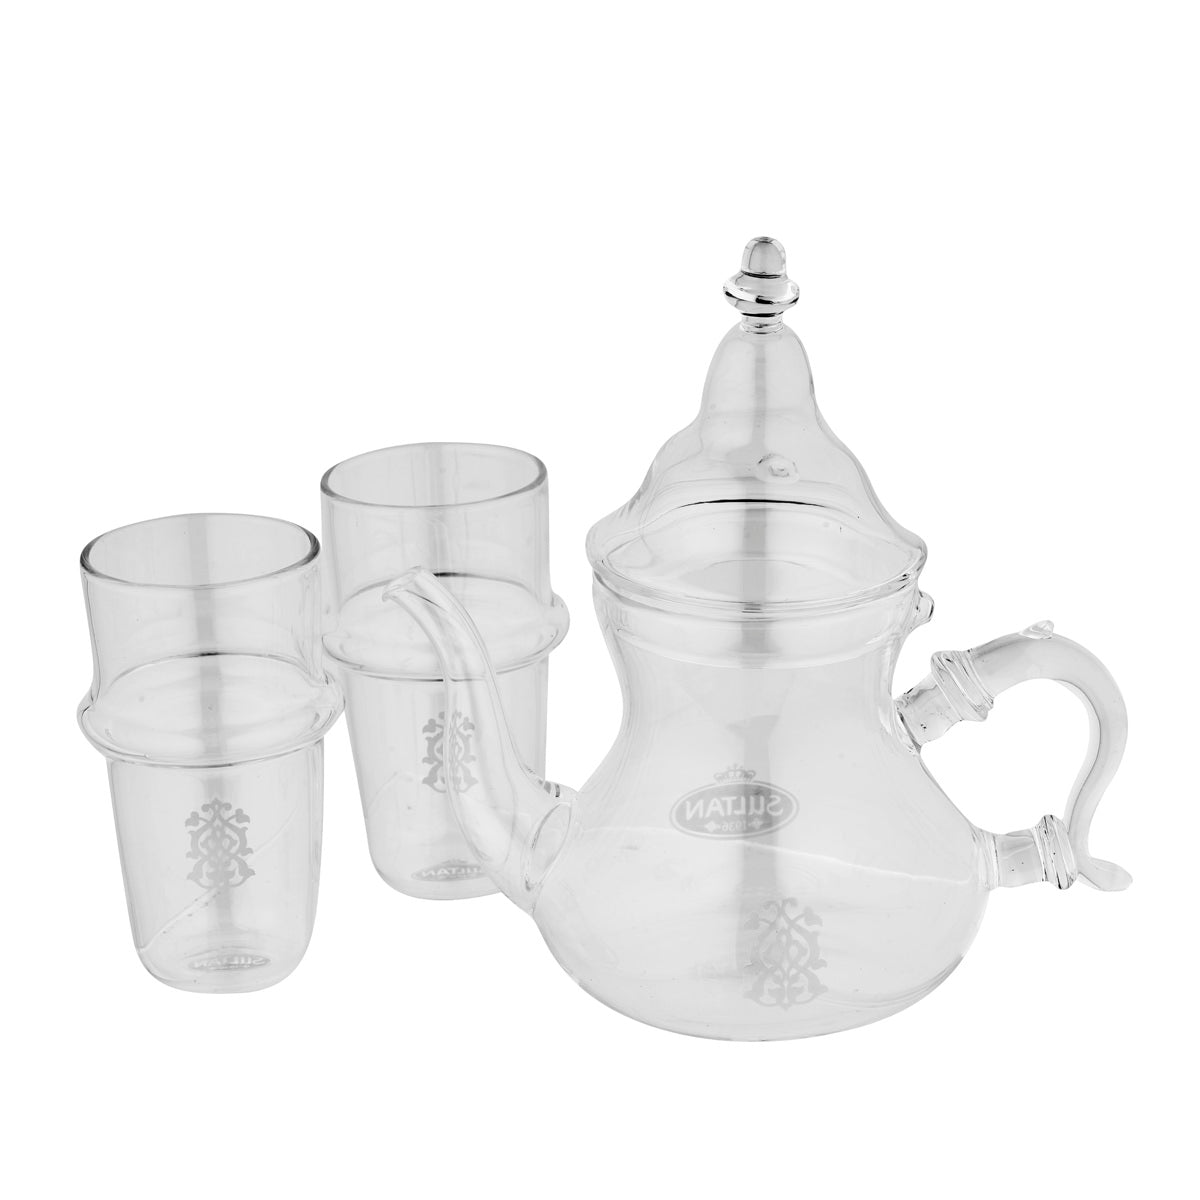 Marokkanische Glasteekanne Set mit 2 Glasbechern